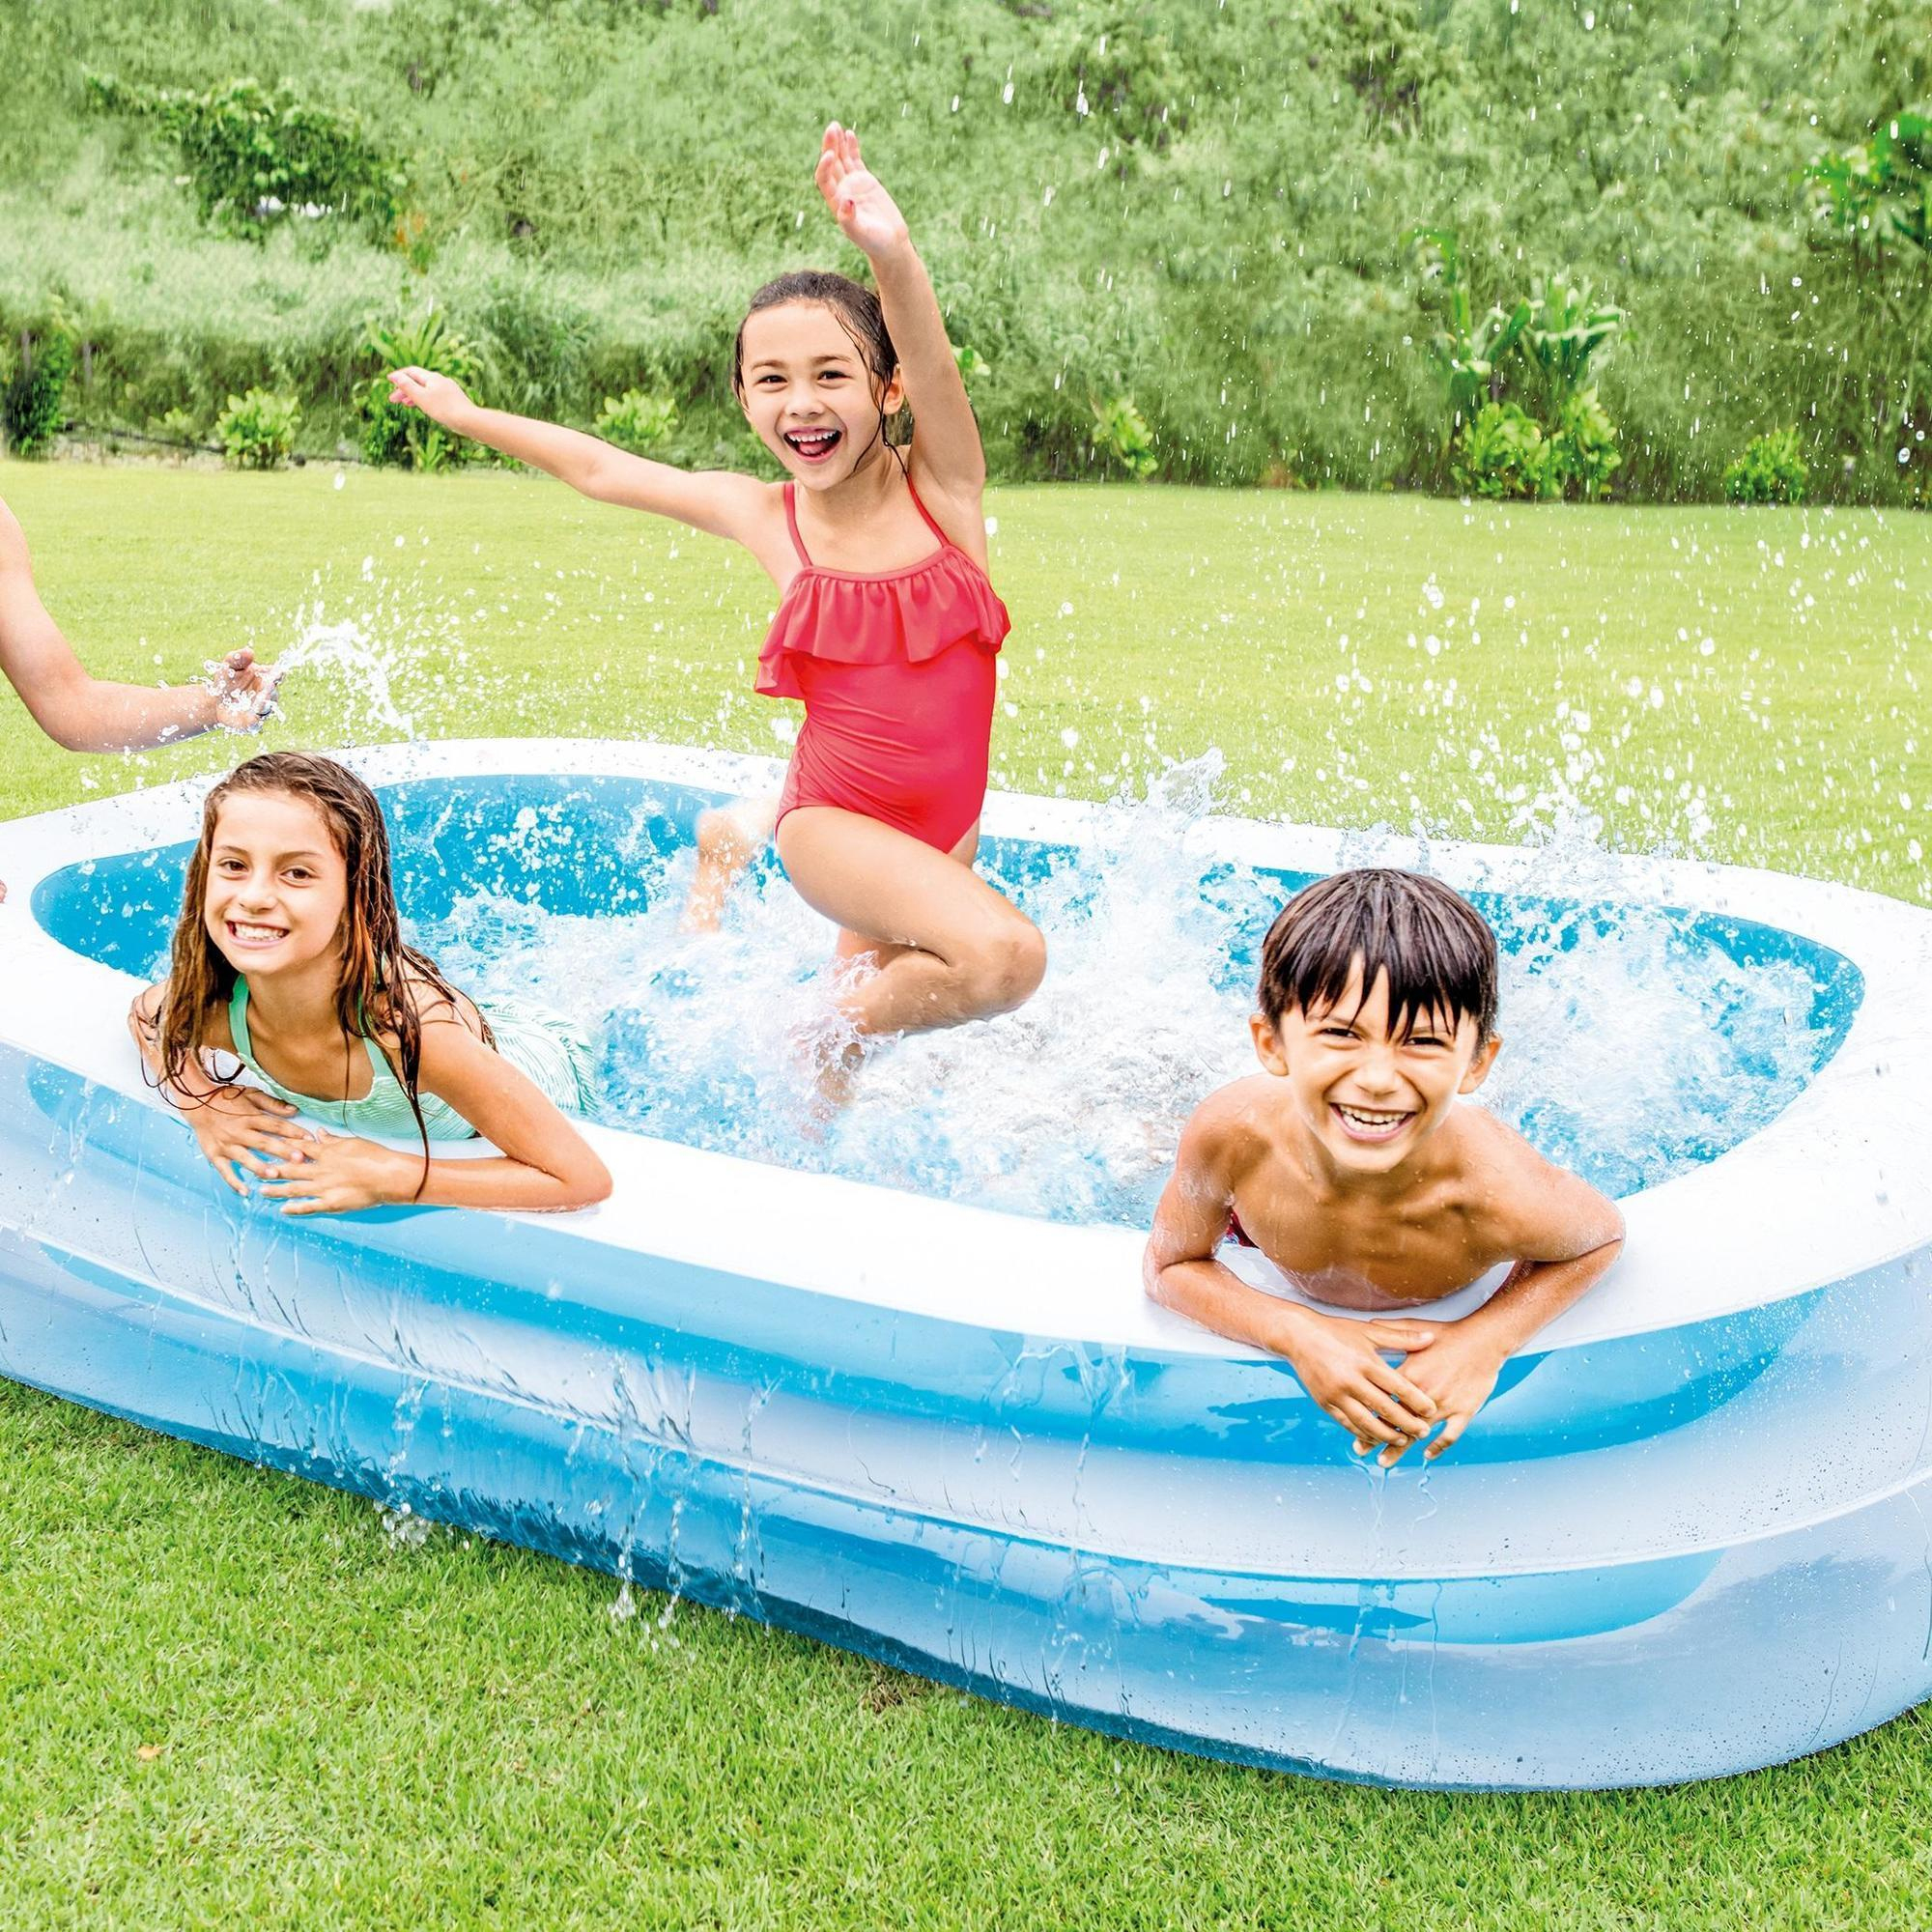 Grande Piscine Gongflable Intex Pour Enfants Et Adultes encequiconcerne Piscine Intex Enfant